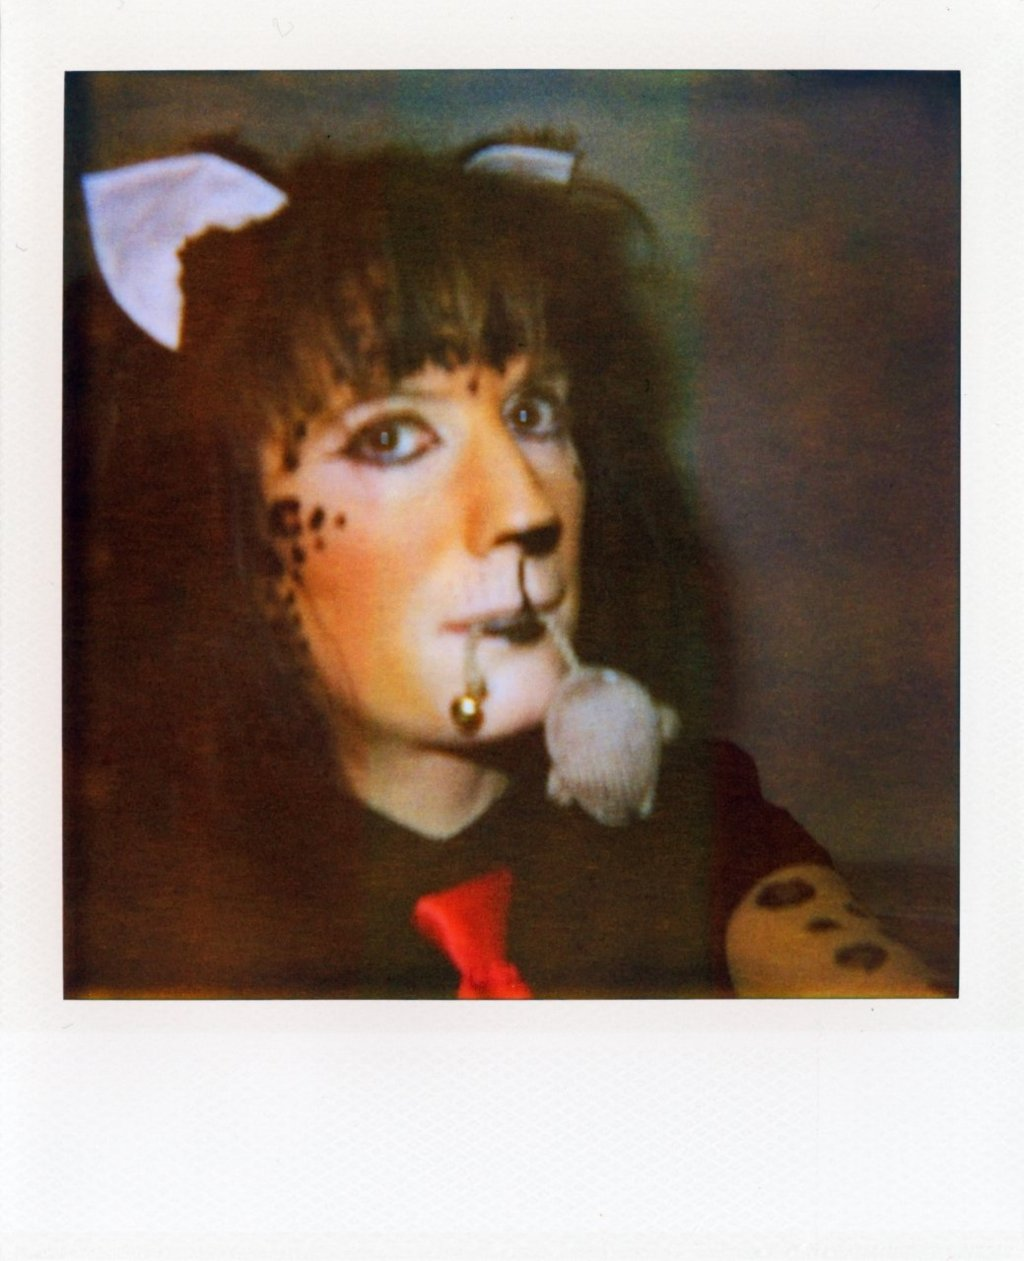 Polaroid Self-Portrait